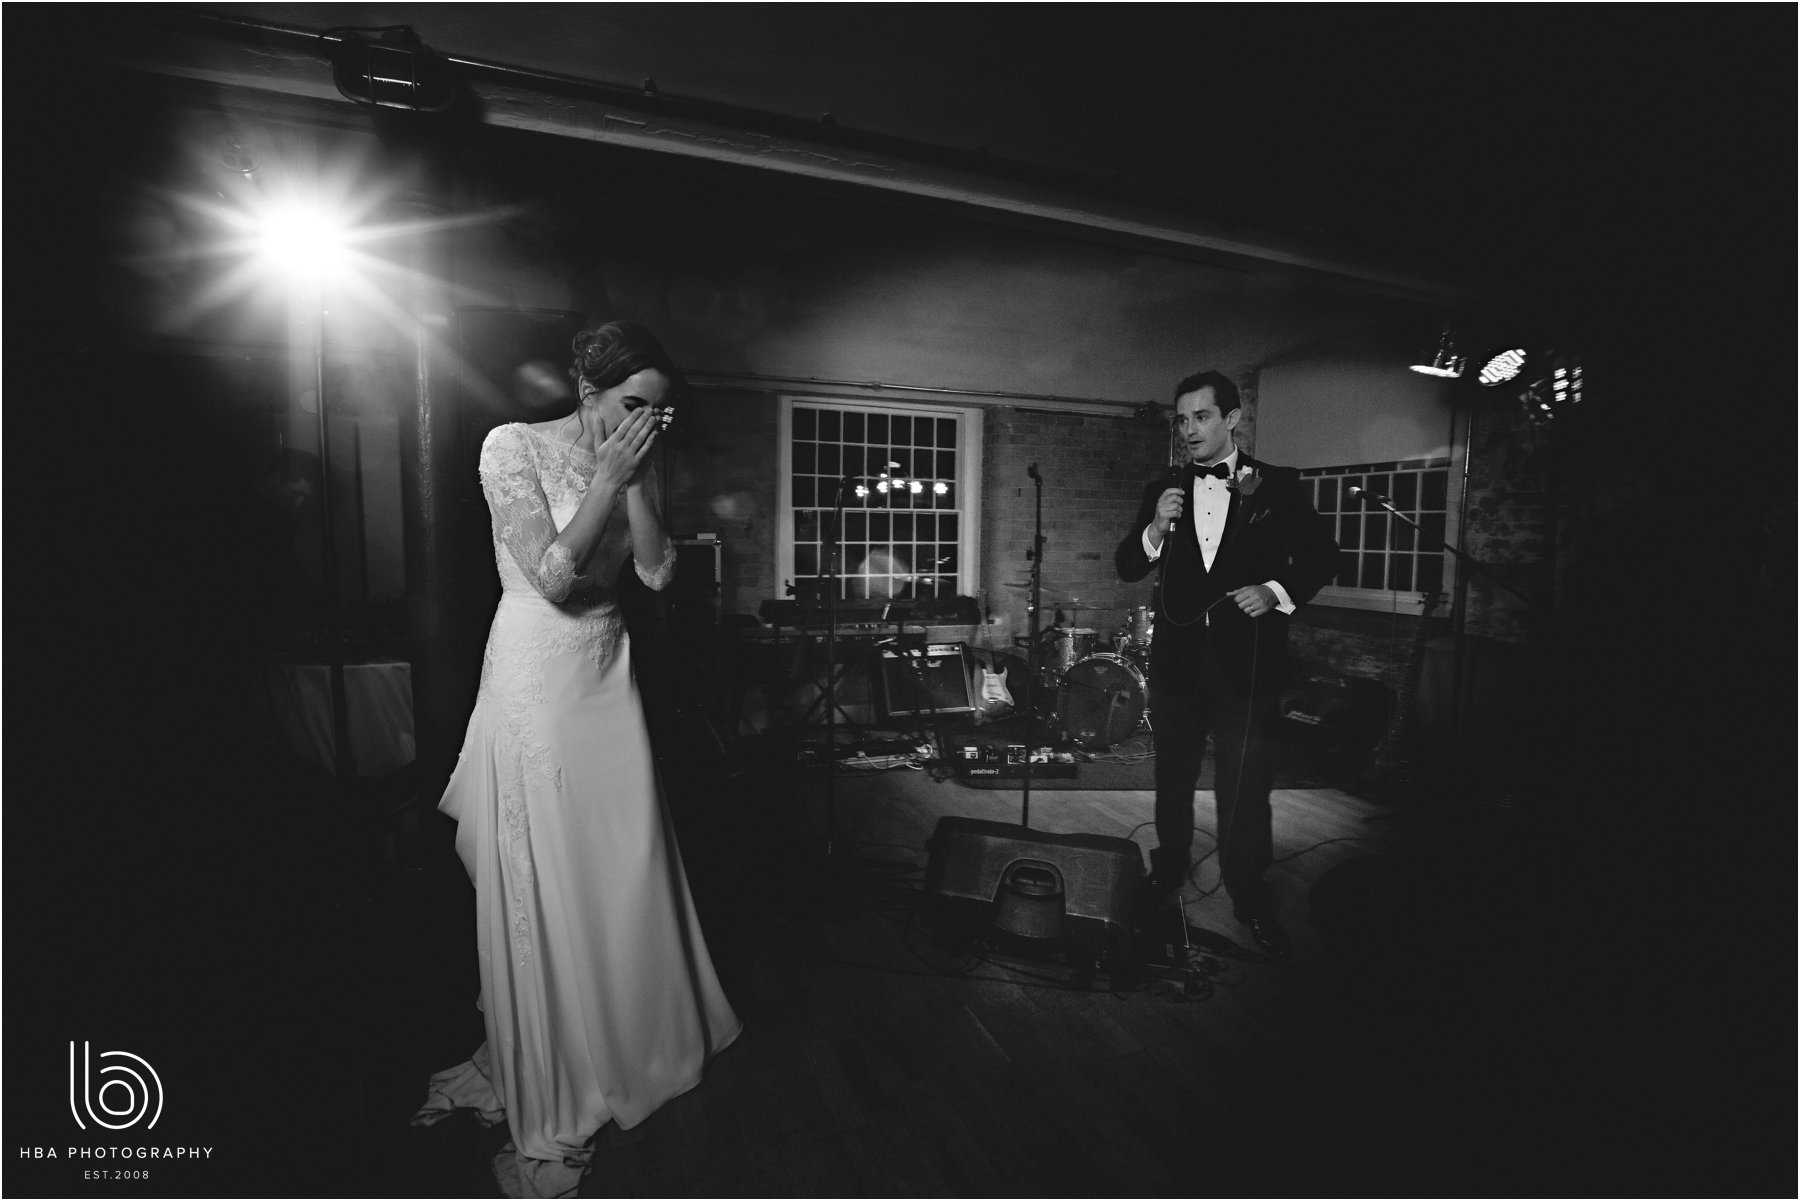 the groom singing for the bride